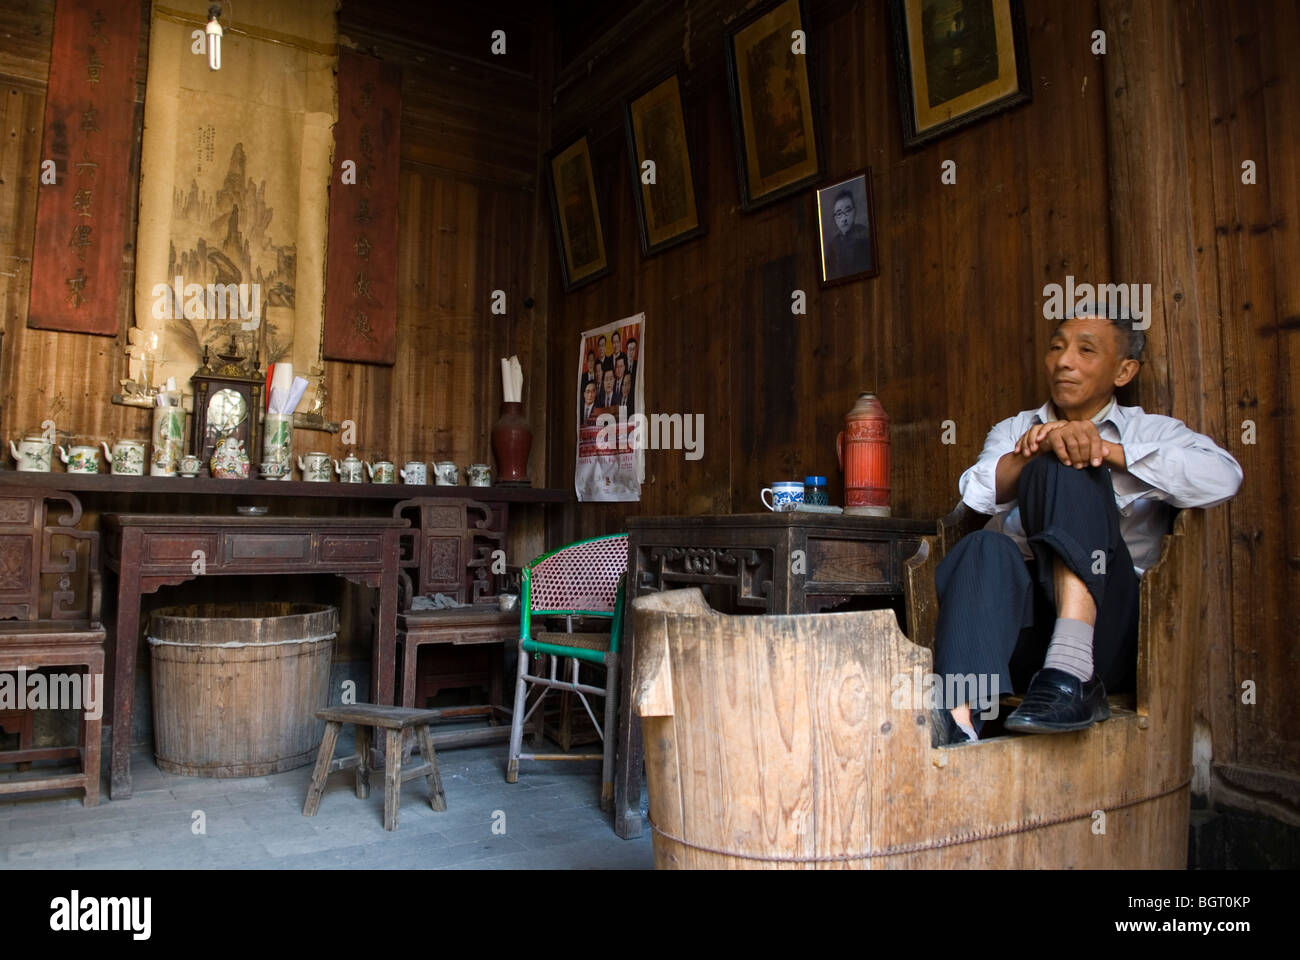 Interior of old merchant's house. Nanping, Anhui province. China. Male person sitting in an old wooden bathtub - Stock Image